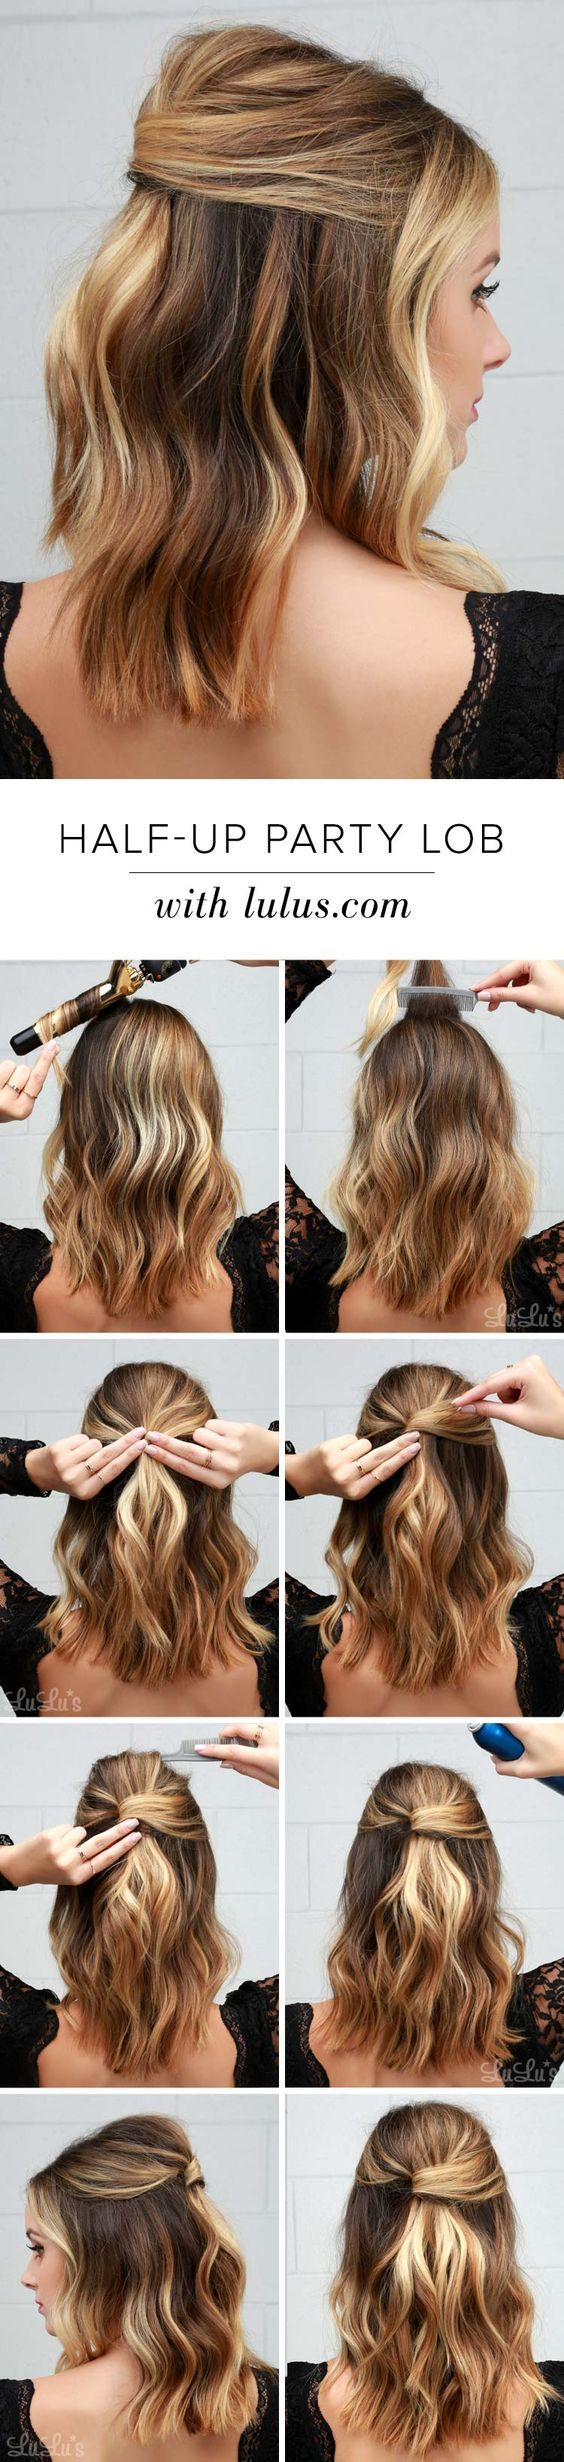 best hair styles images on pinterest hairstyle ideas hair